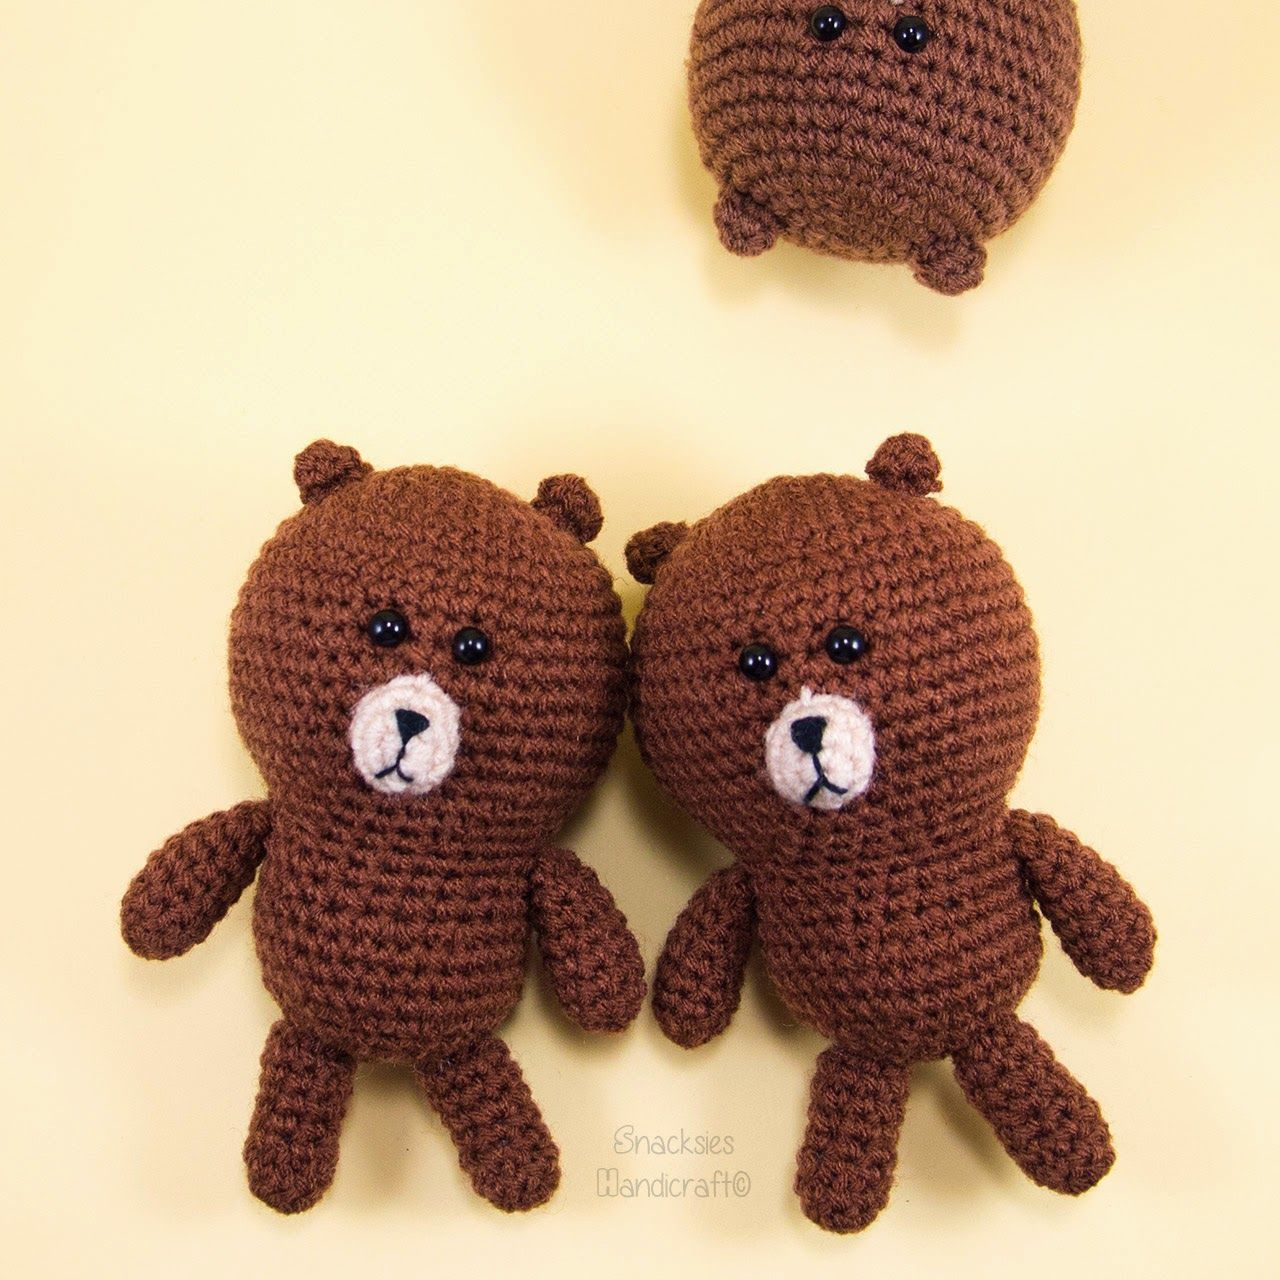 A blog about handmade crafts, especially crocheted toys (amigurumi ...